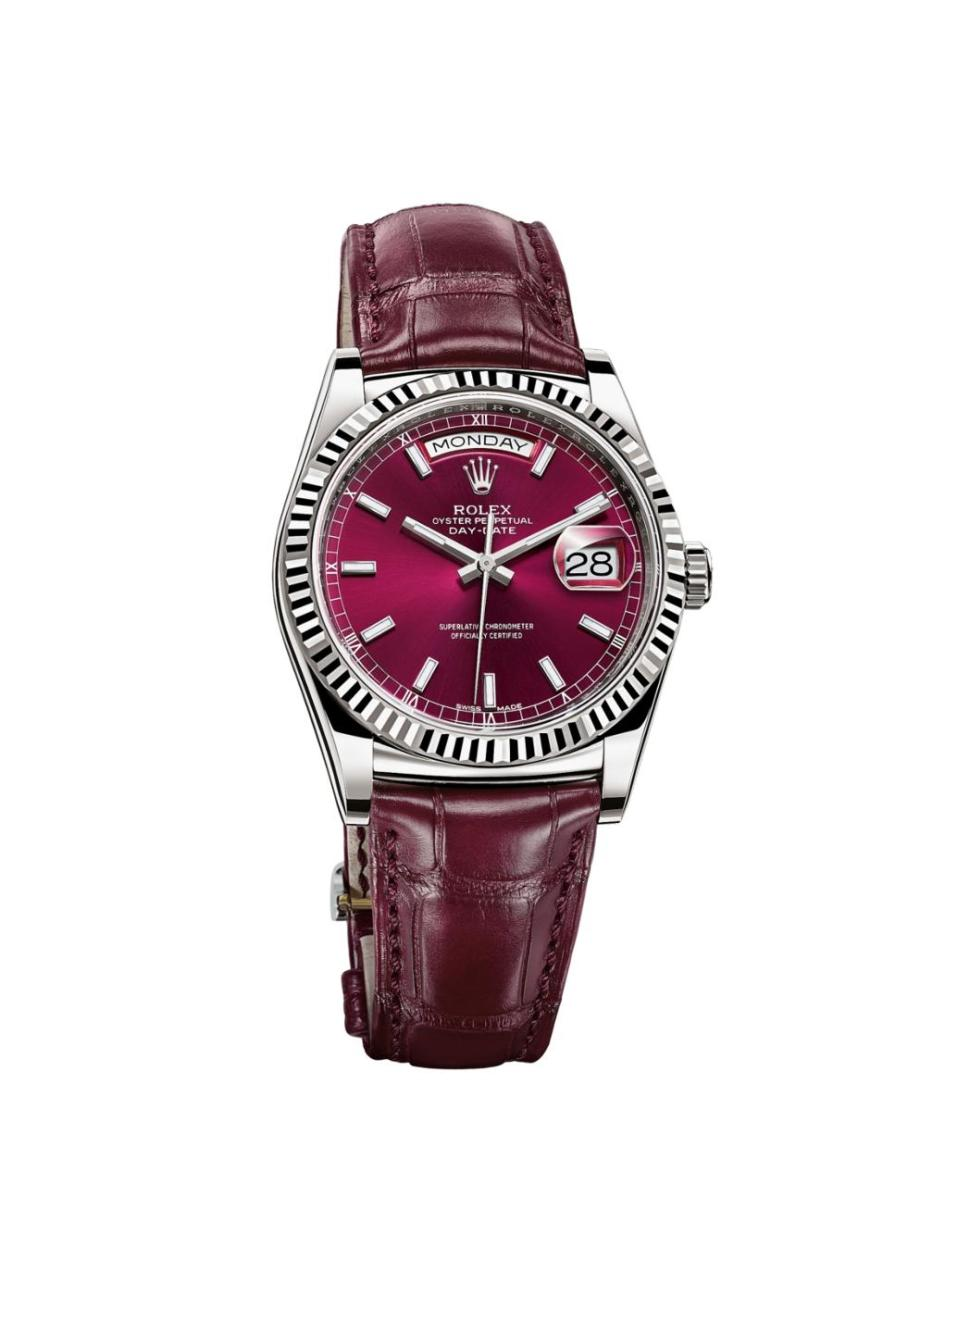 Marsala watch